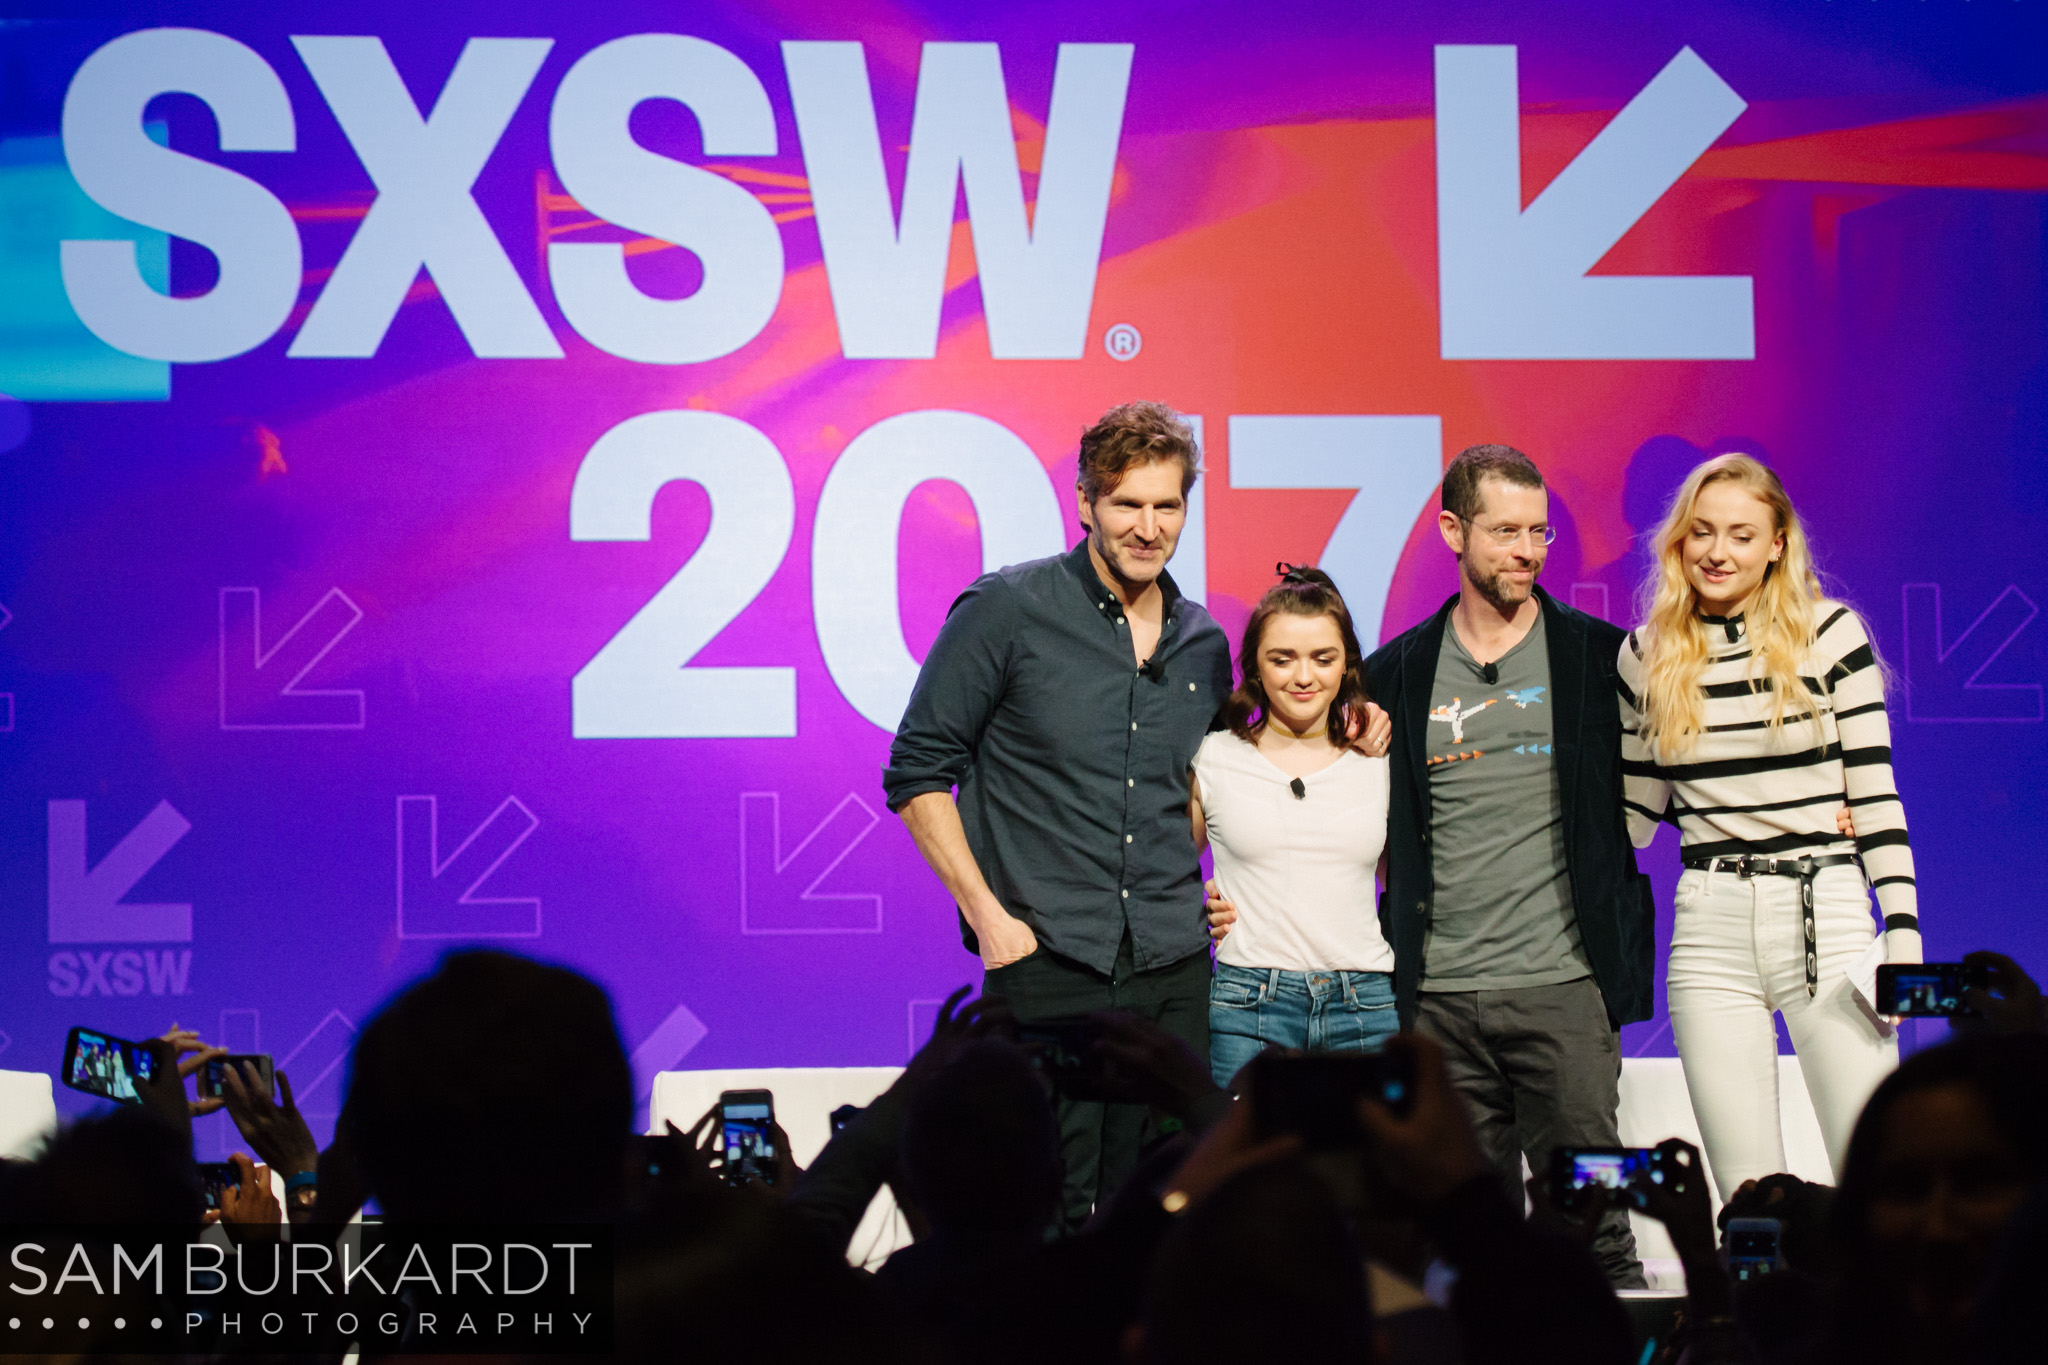 David Benioff, Maisie Williams, D.B. Weiss and Sophie Turner posing for photos after their Game of Thrones panel at SXSW in Austin, Texas.